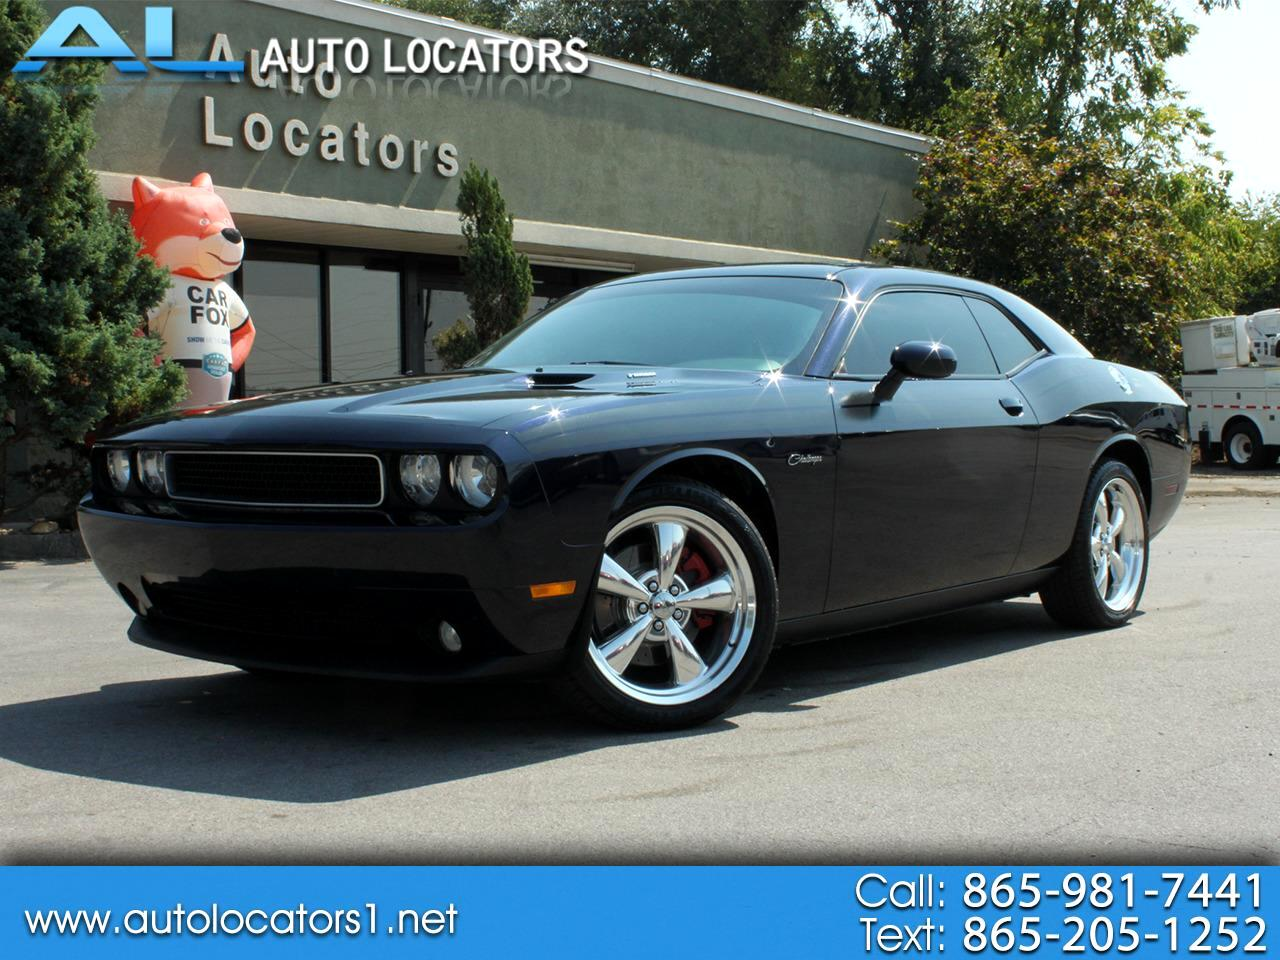 2011 Dodge Challenger R/T Coupe